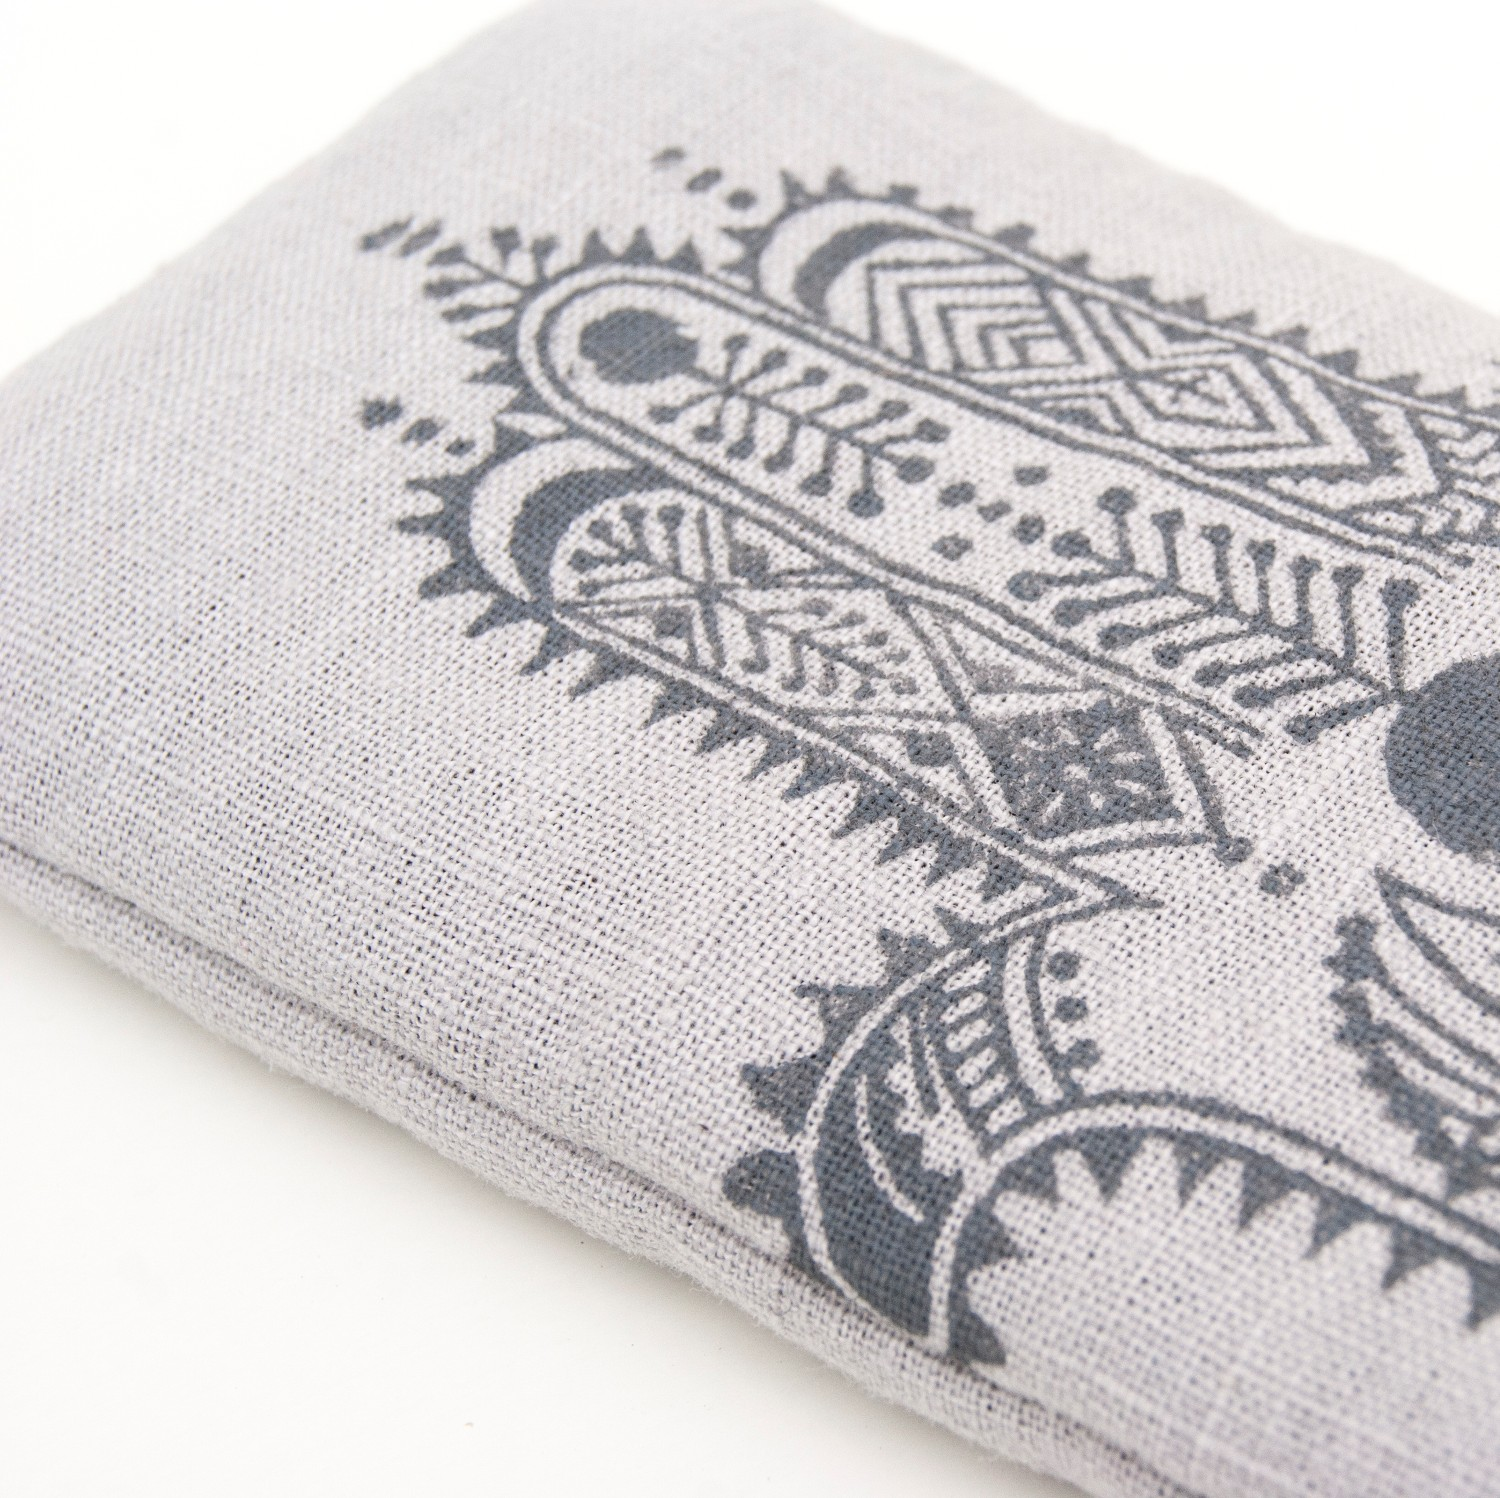 A close up of the Hamsa print by Pure Prana Label